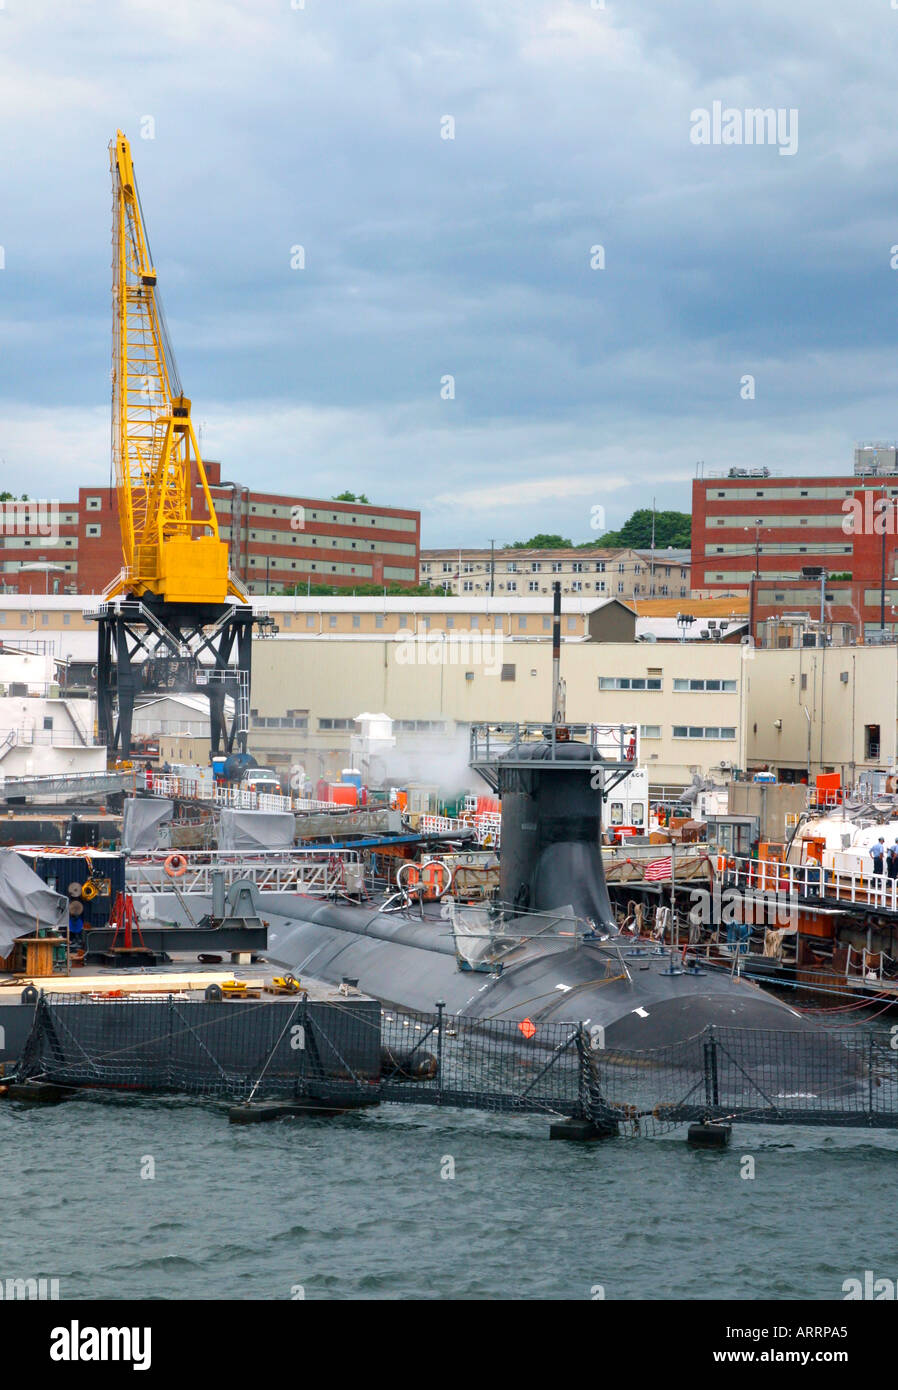 A Virginia class attack nuclear submarine undergoes work at a U.S. sub base in New London, Connecticut. - Stock Image